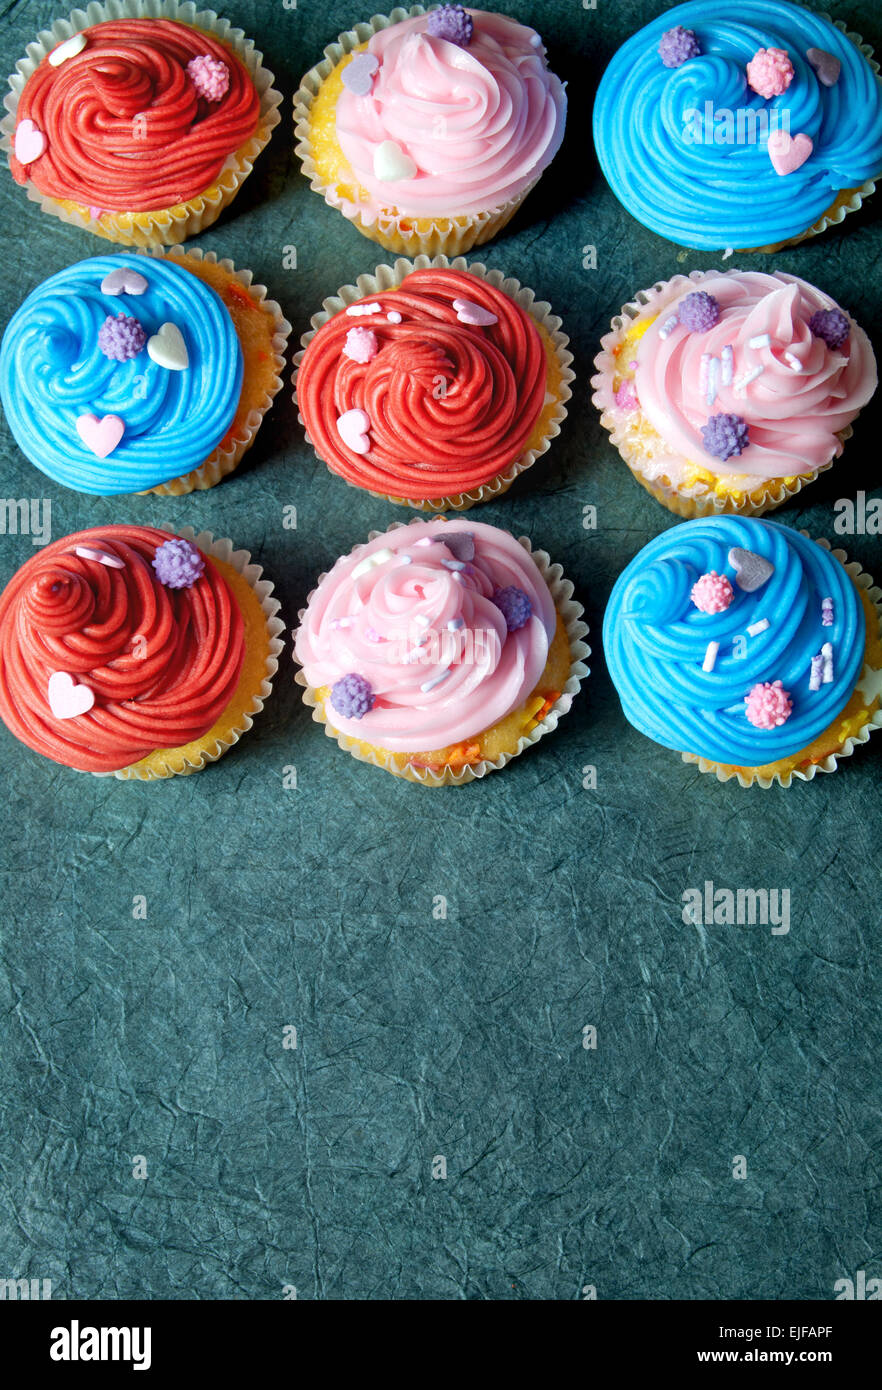 Cupcakes with copyspace - Stock Image